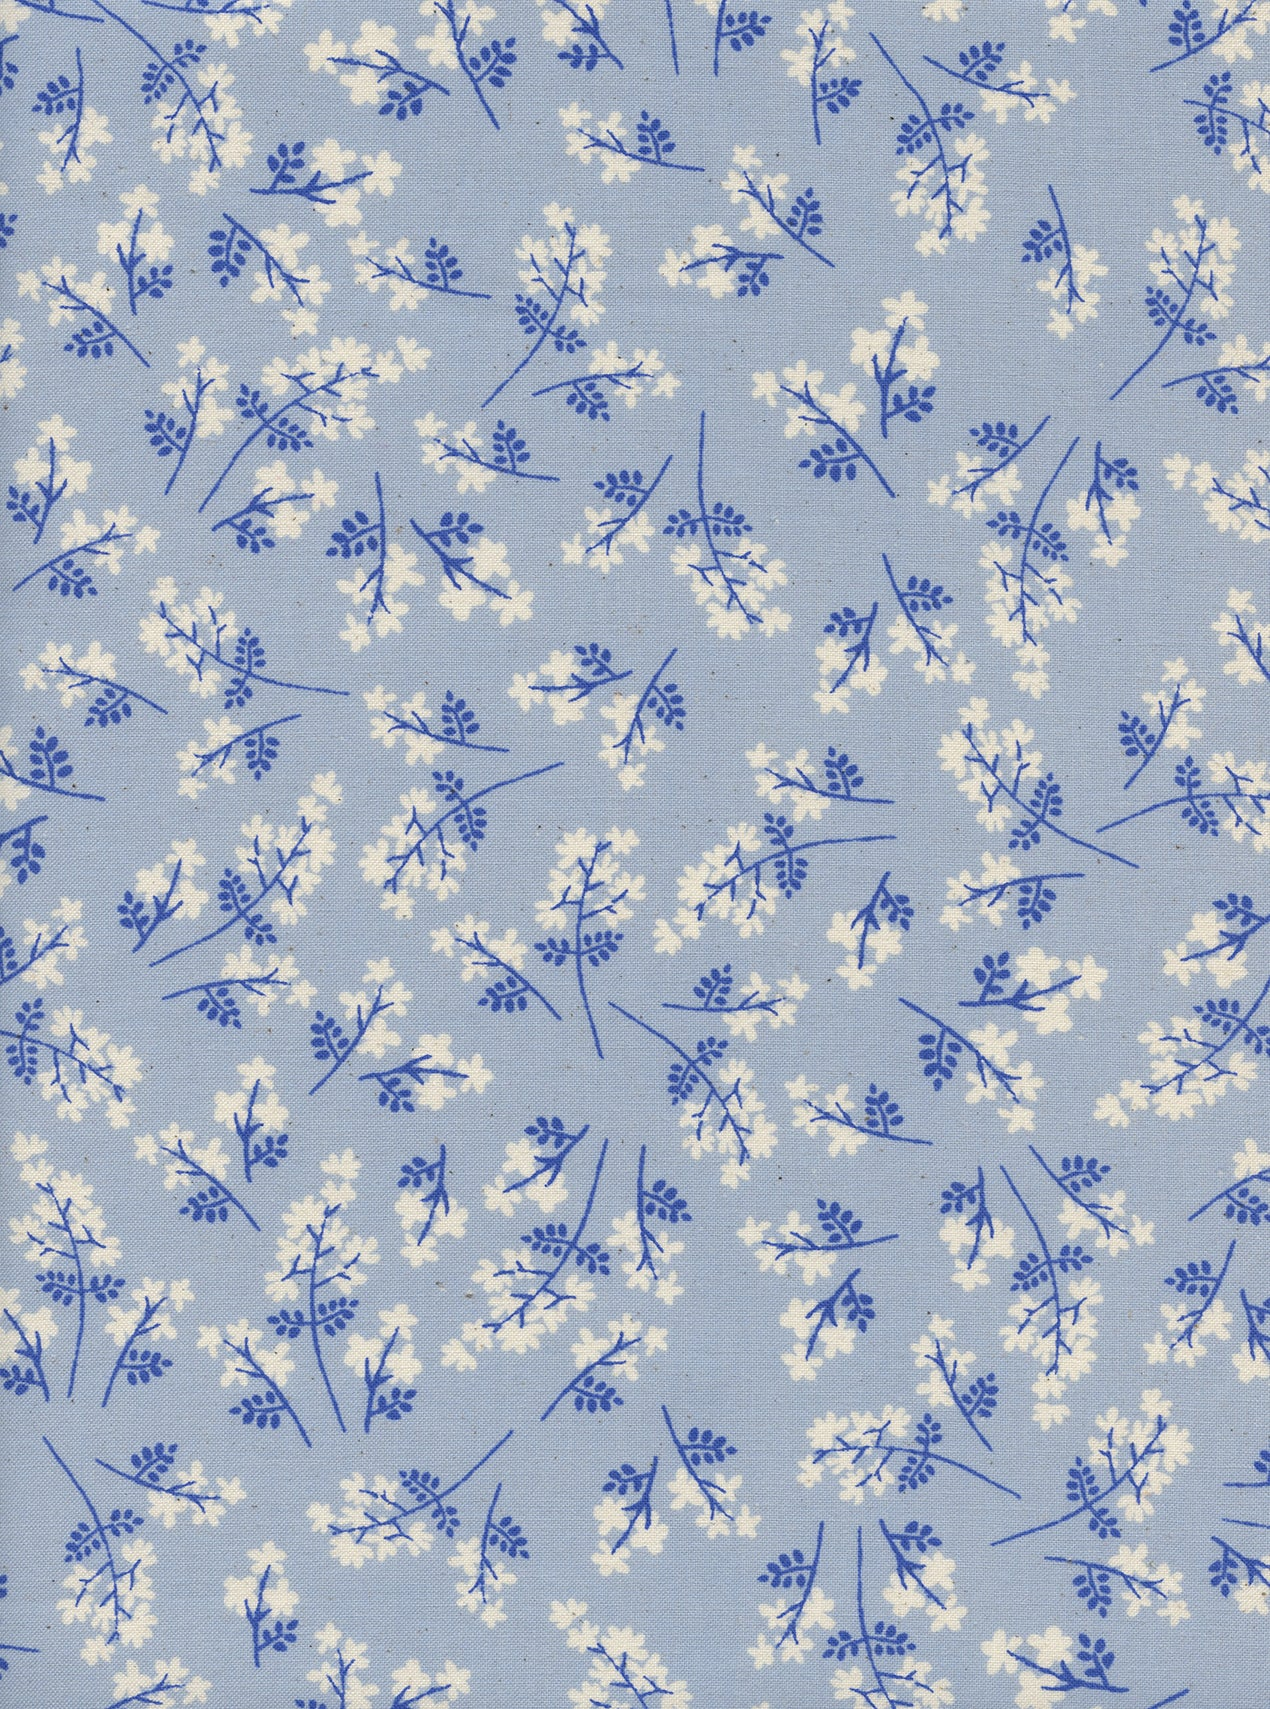 C+S S.S. Bluebird - Bouquet - Blue Unbleached Cotton Fabric